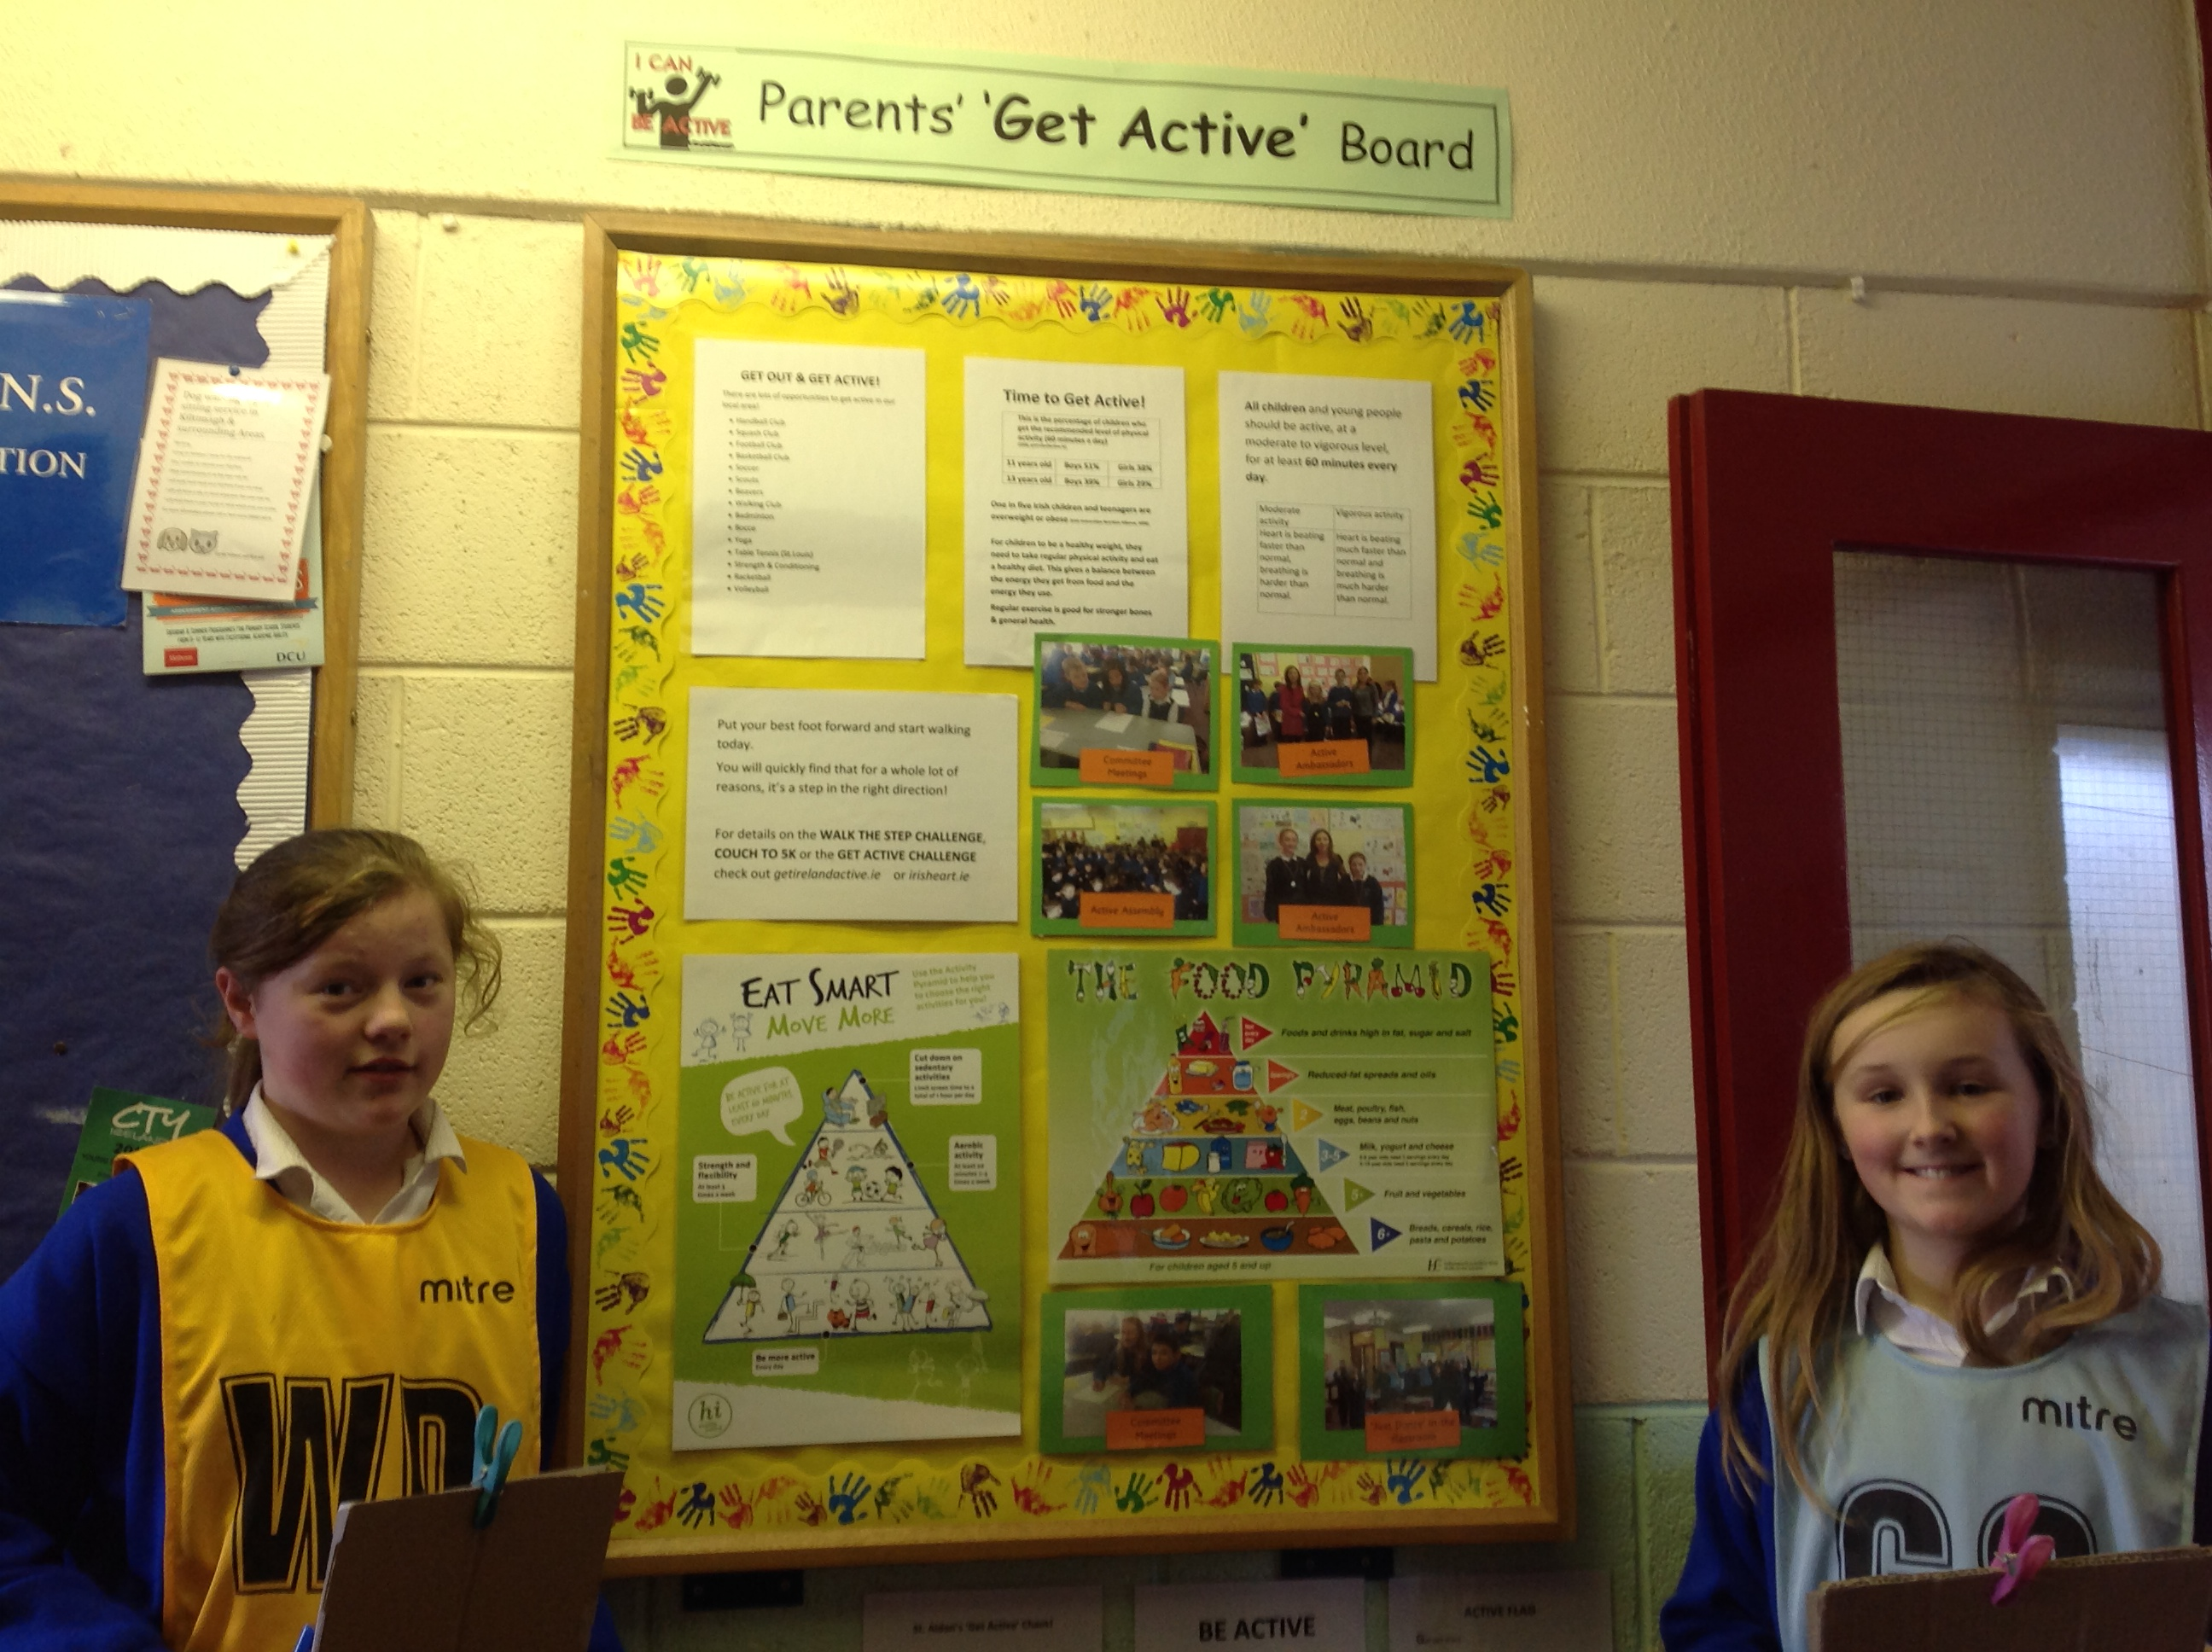 Our 'Parents, Get Active' display board